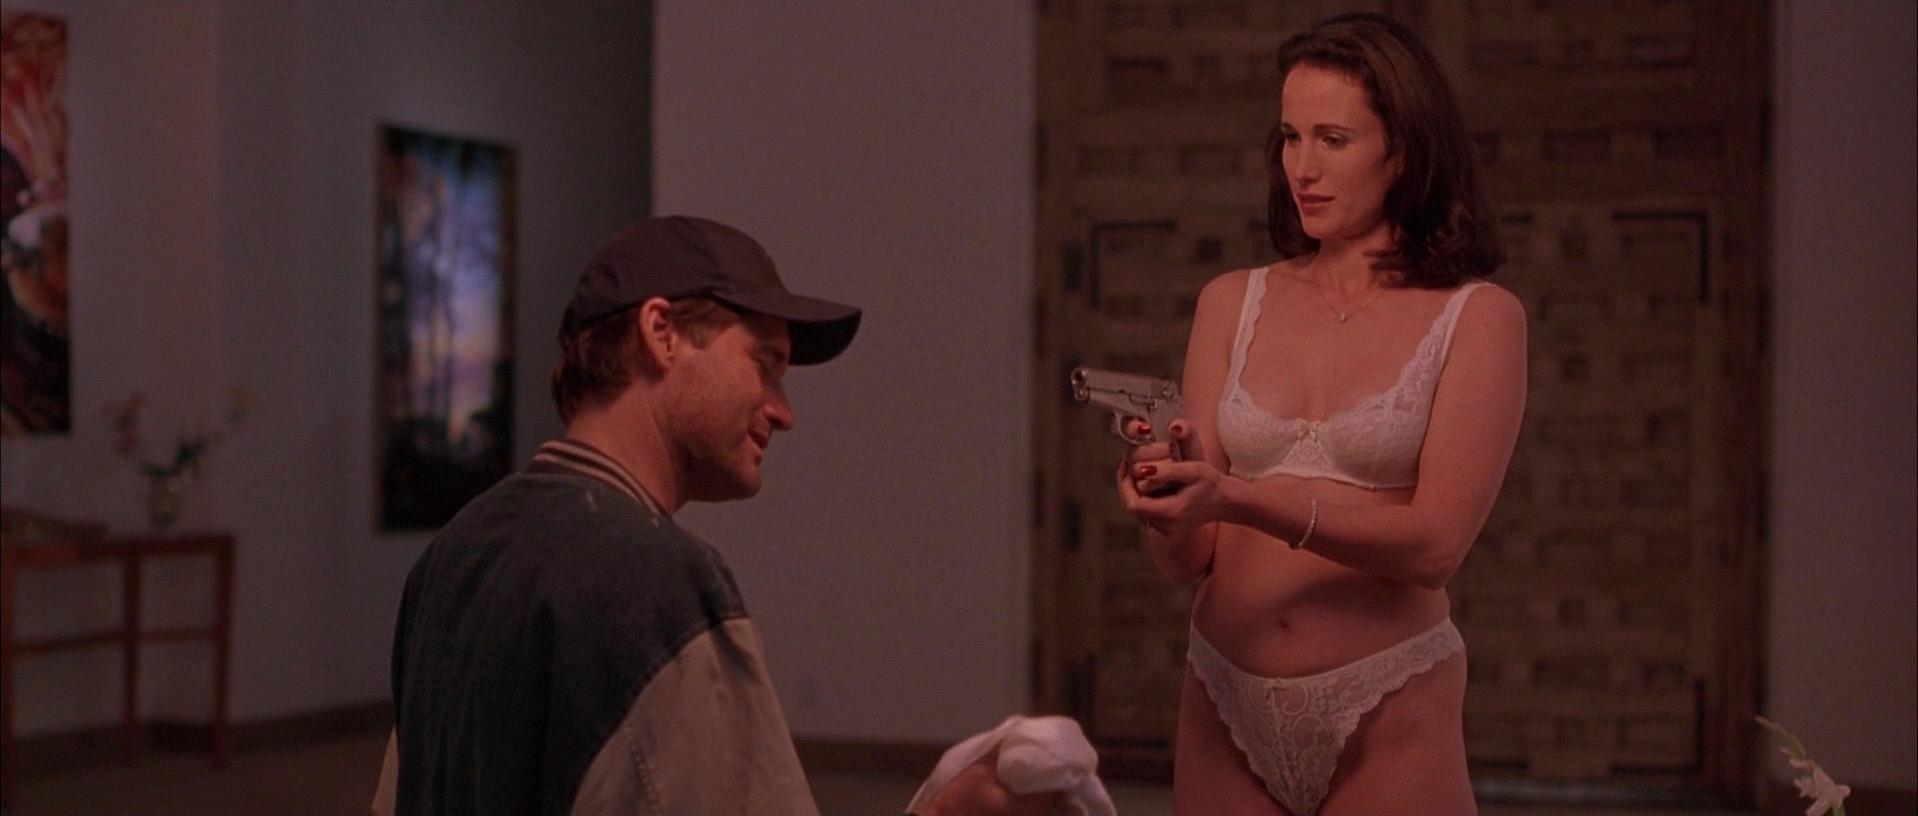 Andie Macdowell Nude In Love After Love andie macdowell gallery nude . 20 new sex pics. comments: 5